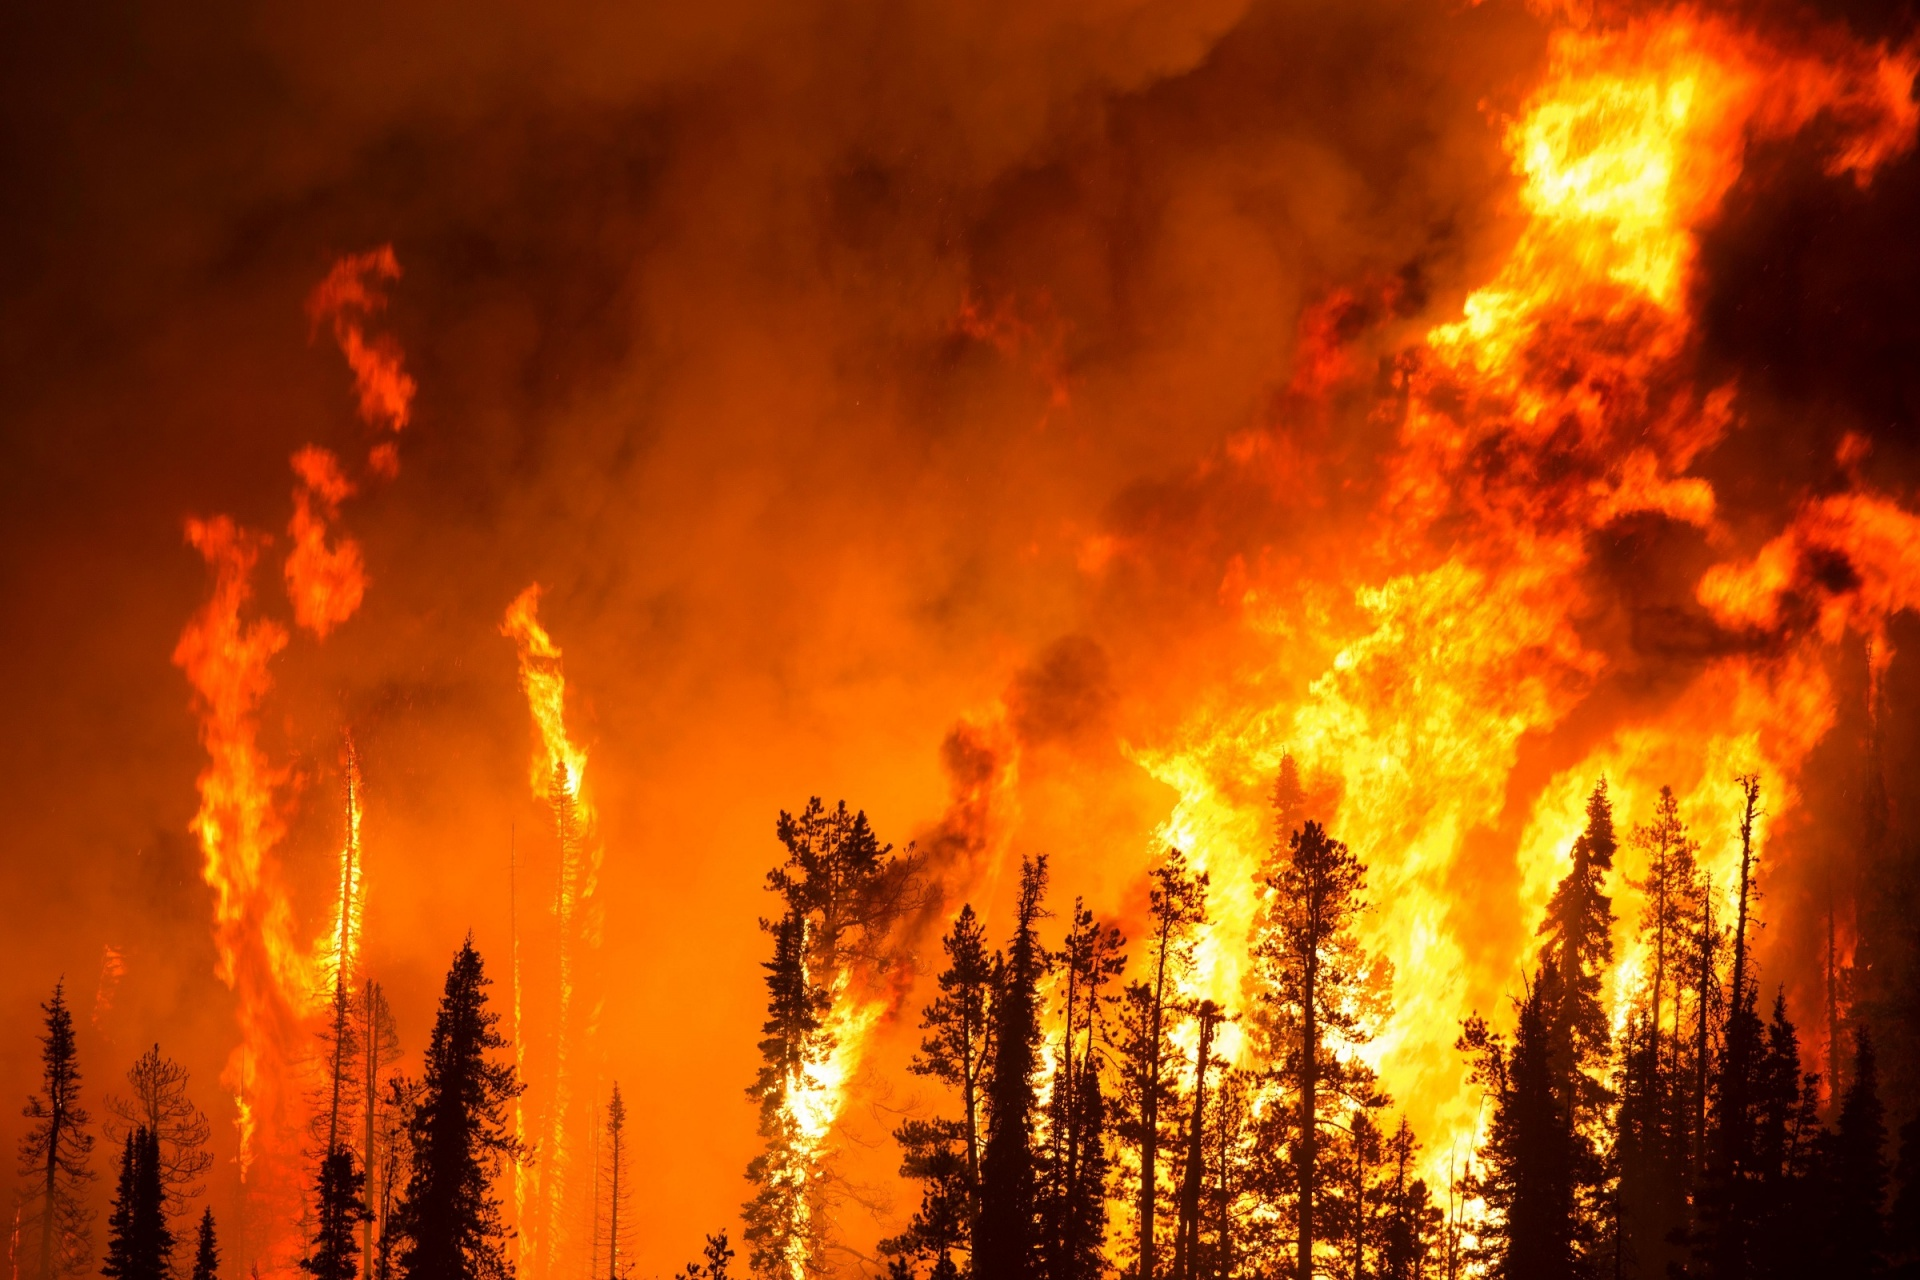 Raging wildfire burning a forest